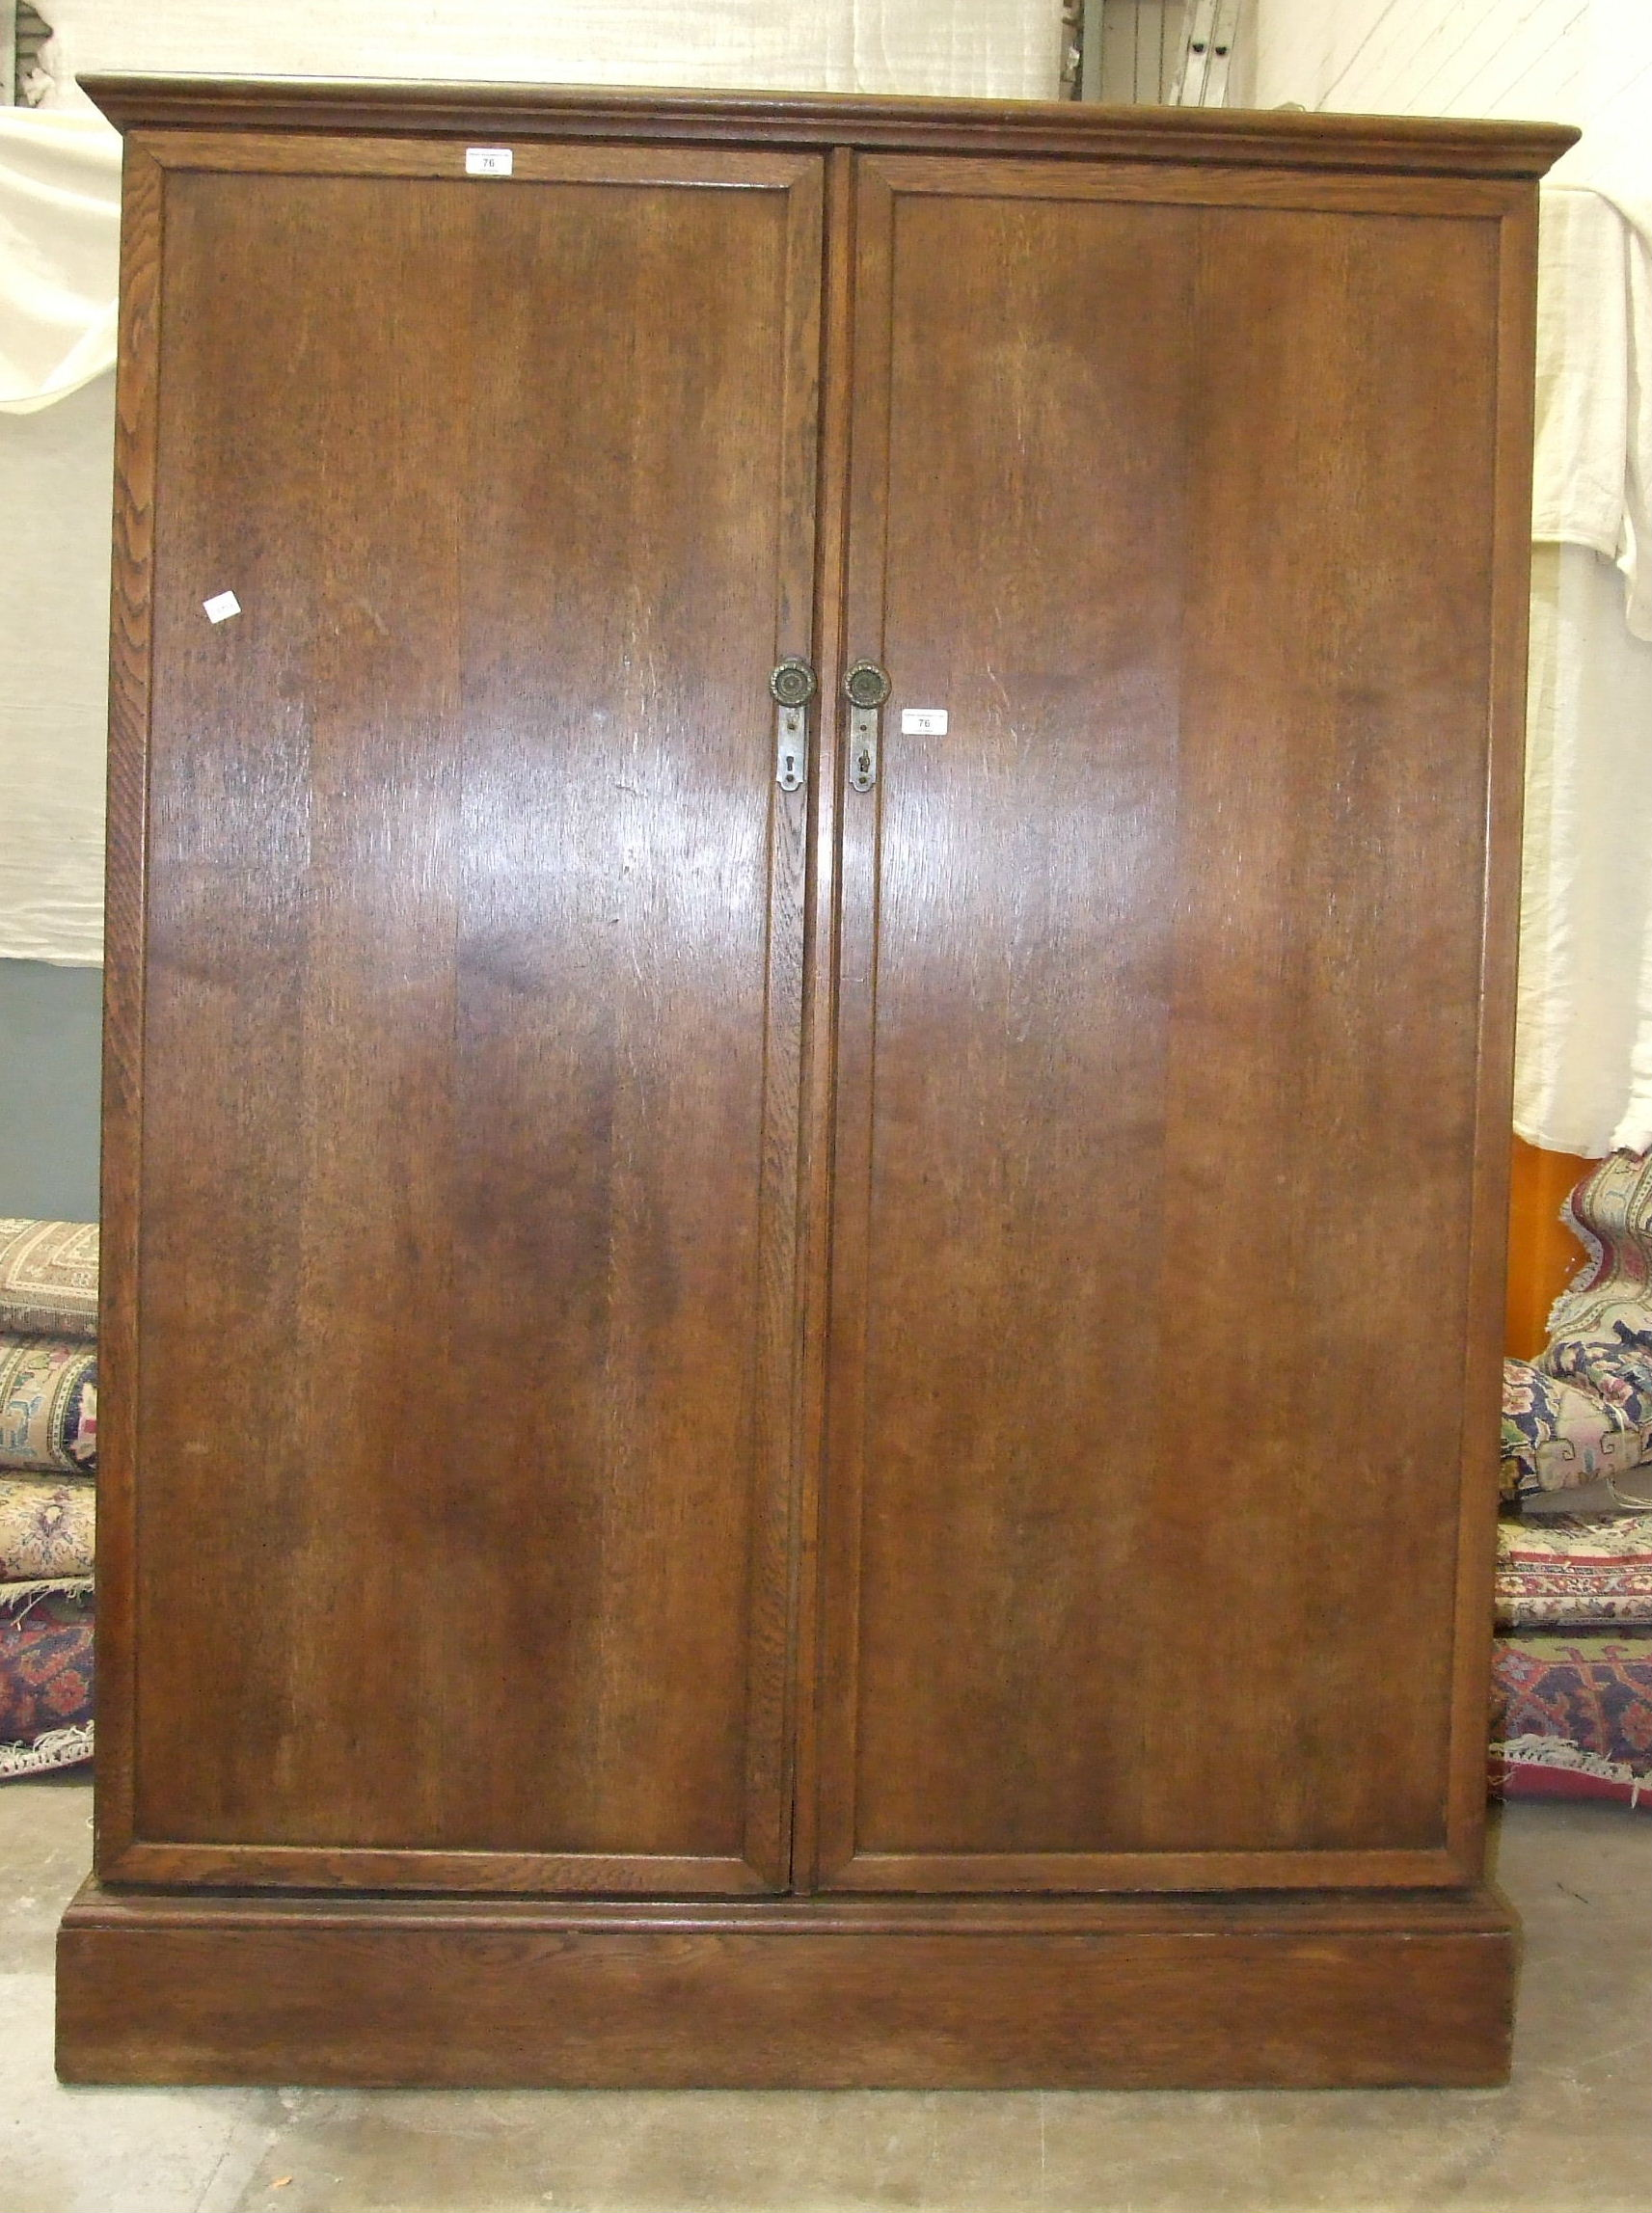 """An oak """"Compactum"""" wardrobe with fully-fitted interior, including glazed compartments, trouser and - Image 5 of 5"""